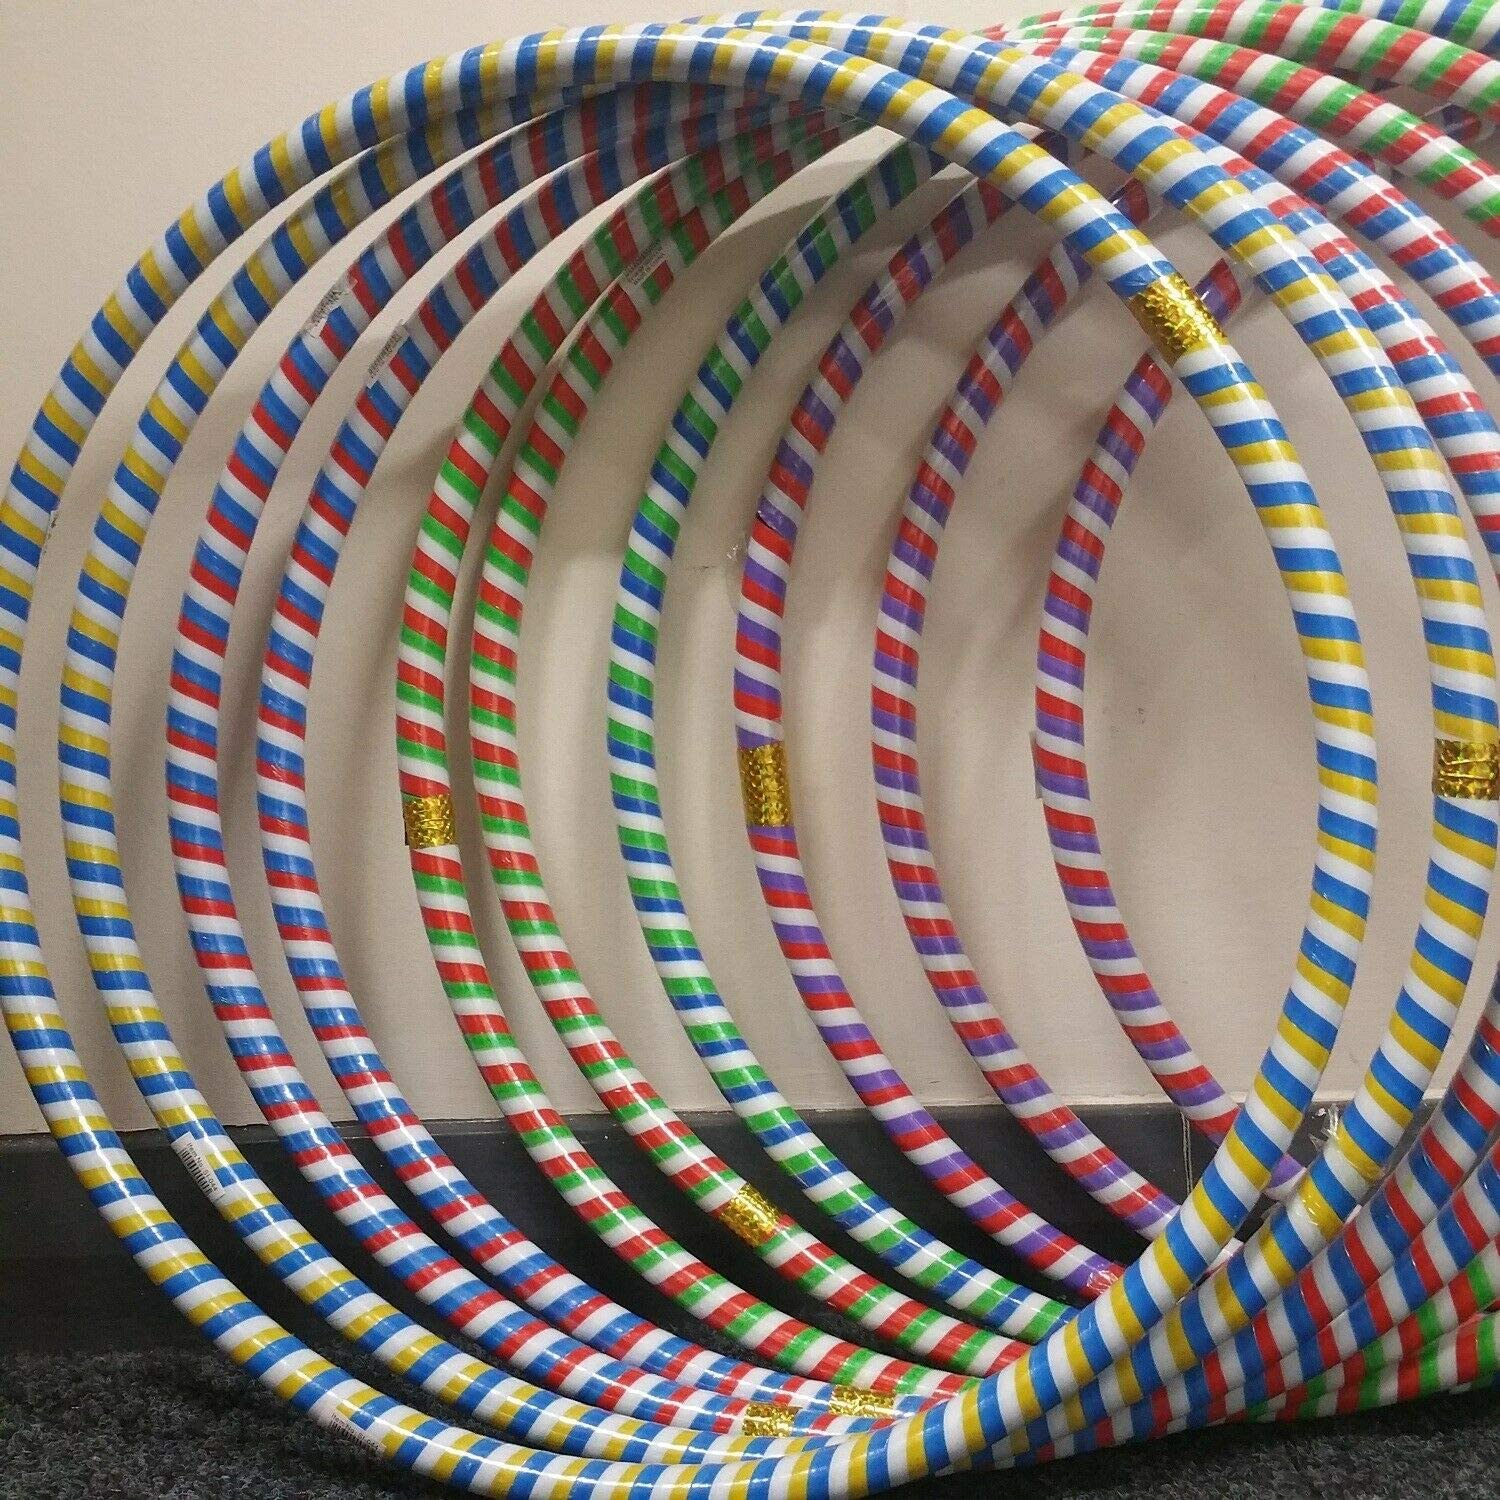 PK OF 10, 50 cm Rattan Stripe FlickBuyz Strong Rattan Stripe Small Large Multicolour Hula Hoop sporting Goods Indoor Outdoor Exercise Gym Hula Hoop